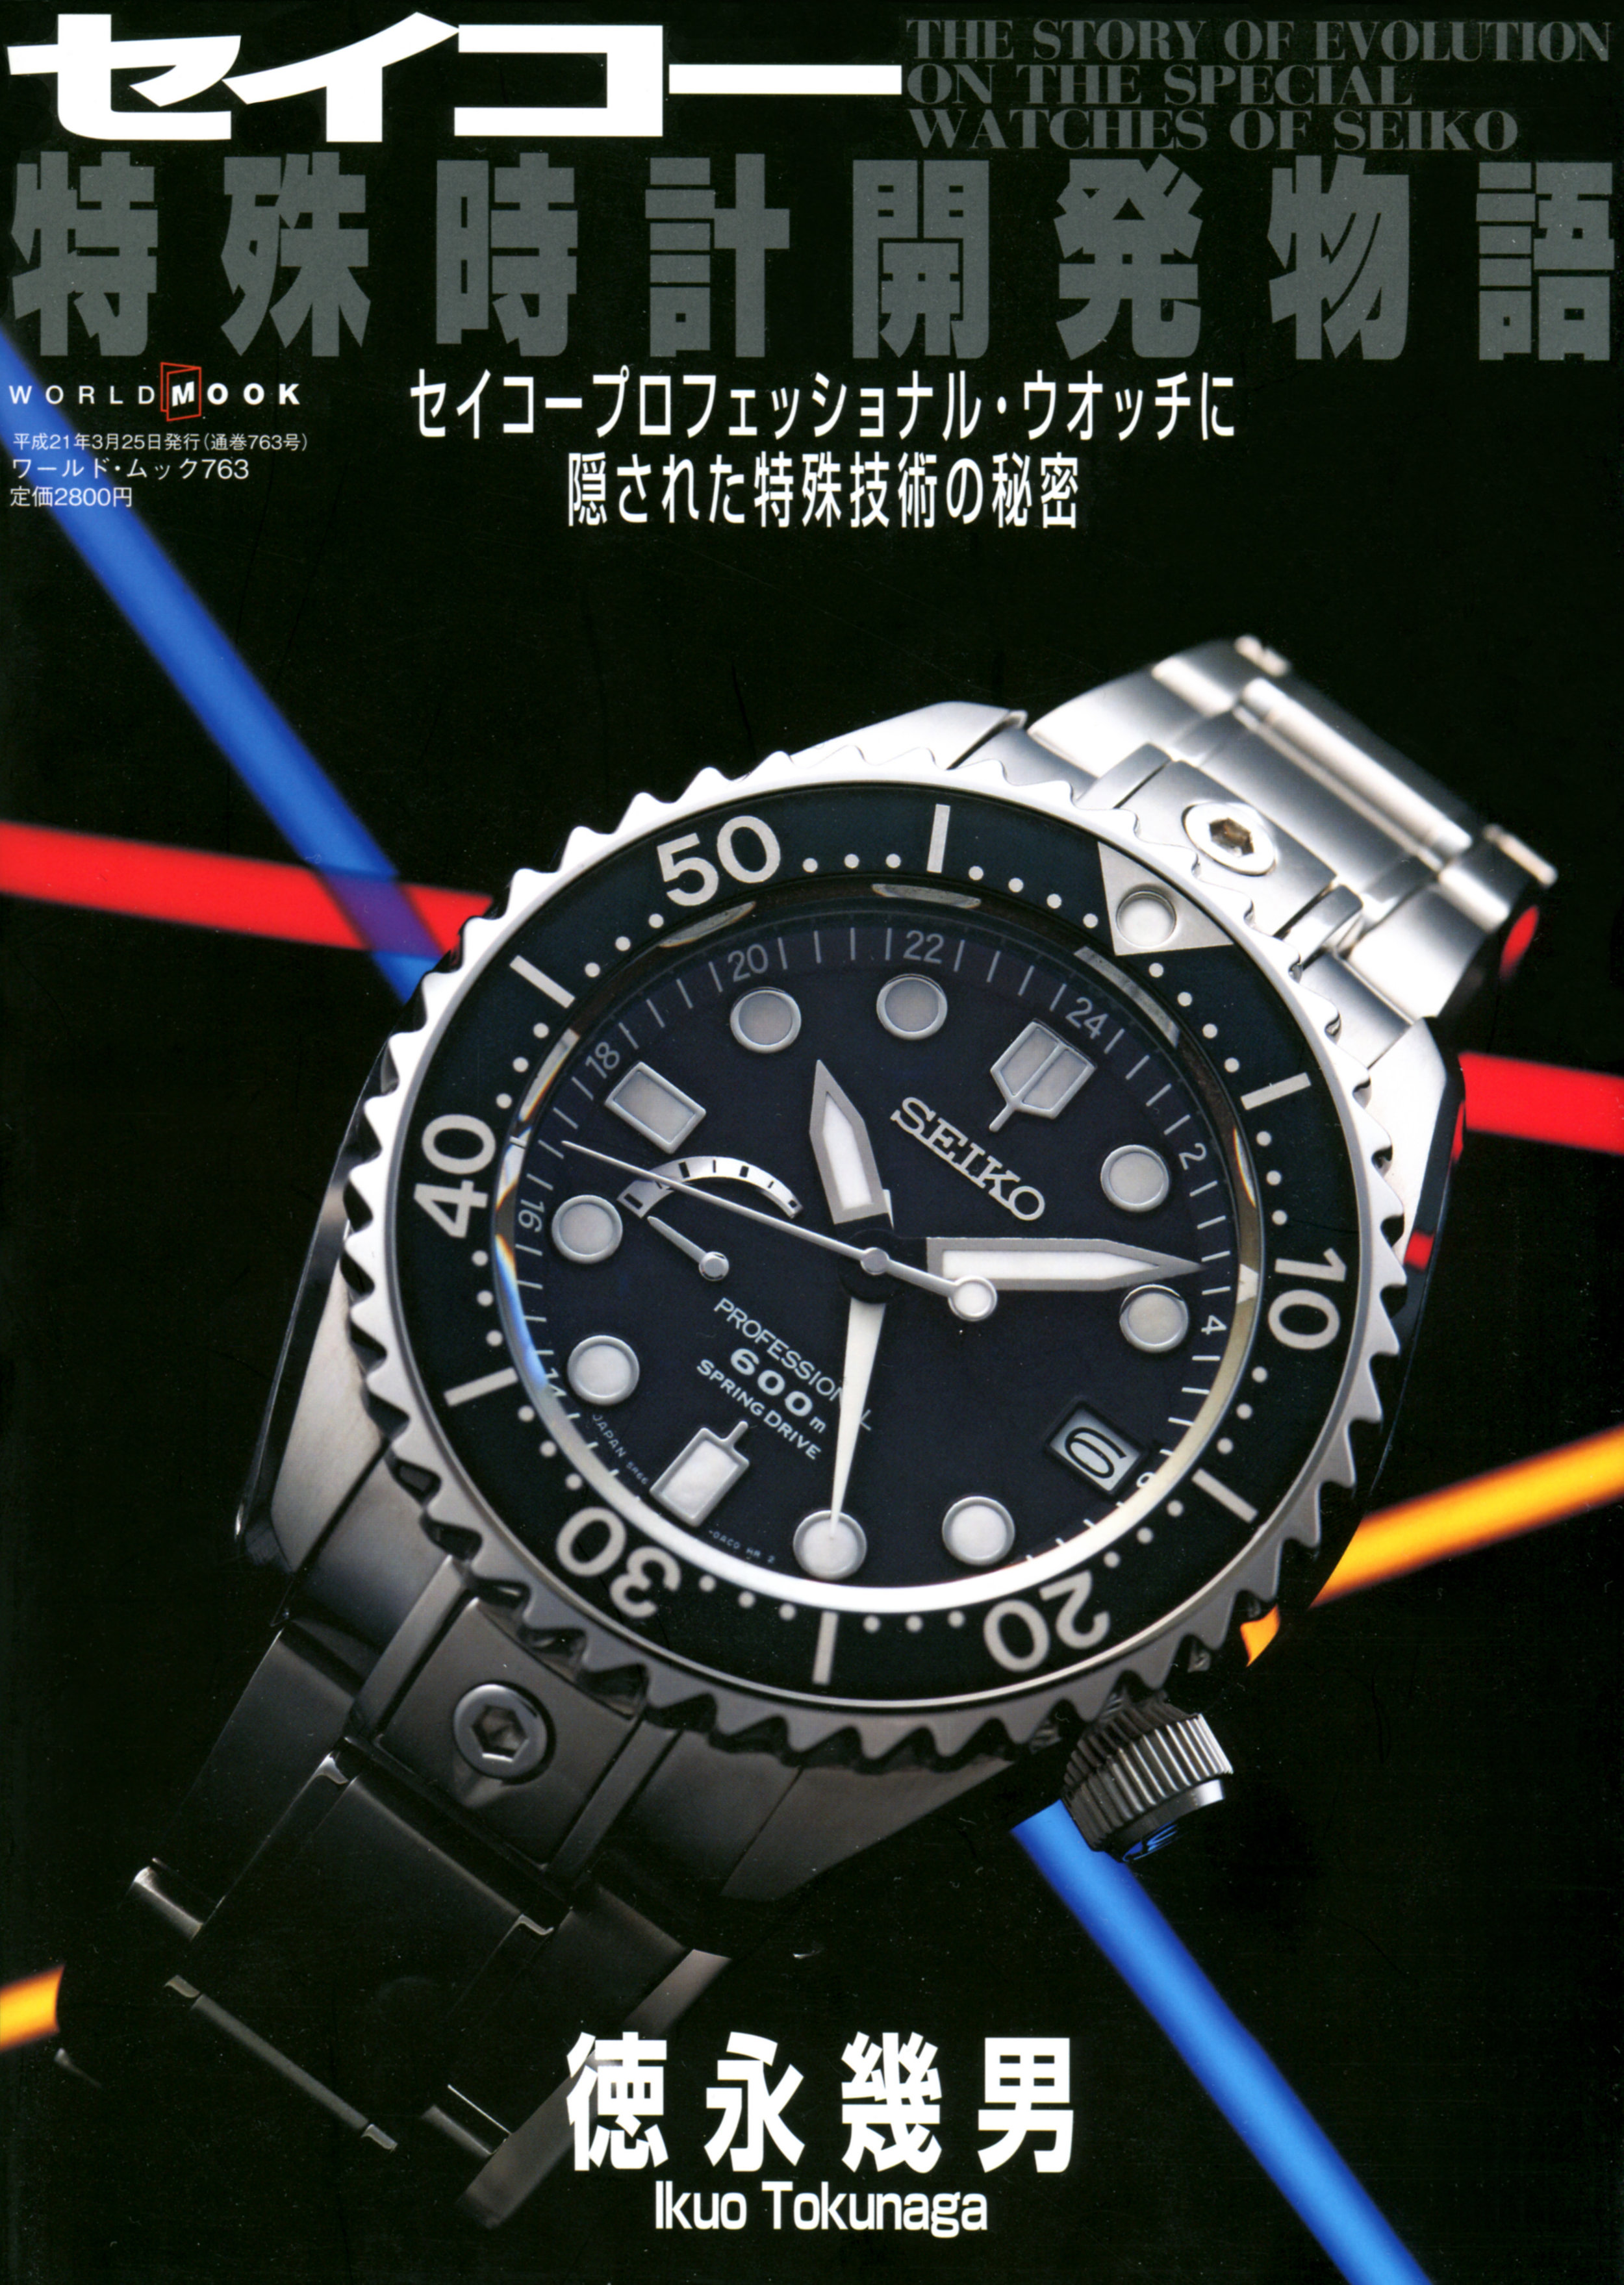 Cover - The Story of Evolution on the Special Watches of Seiko